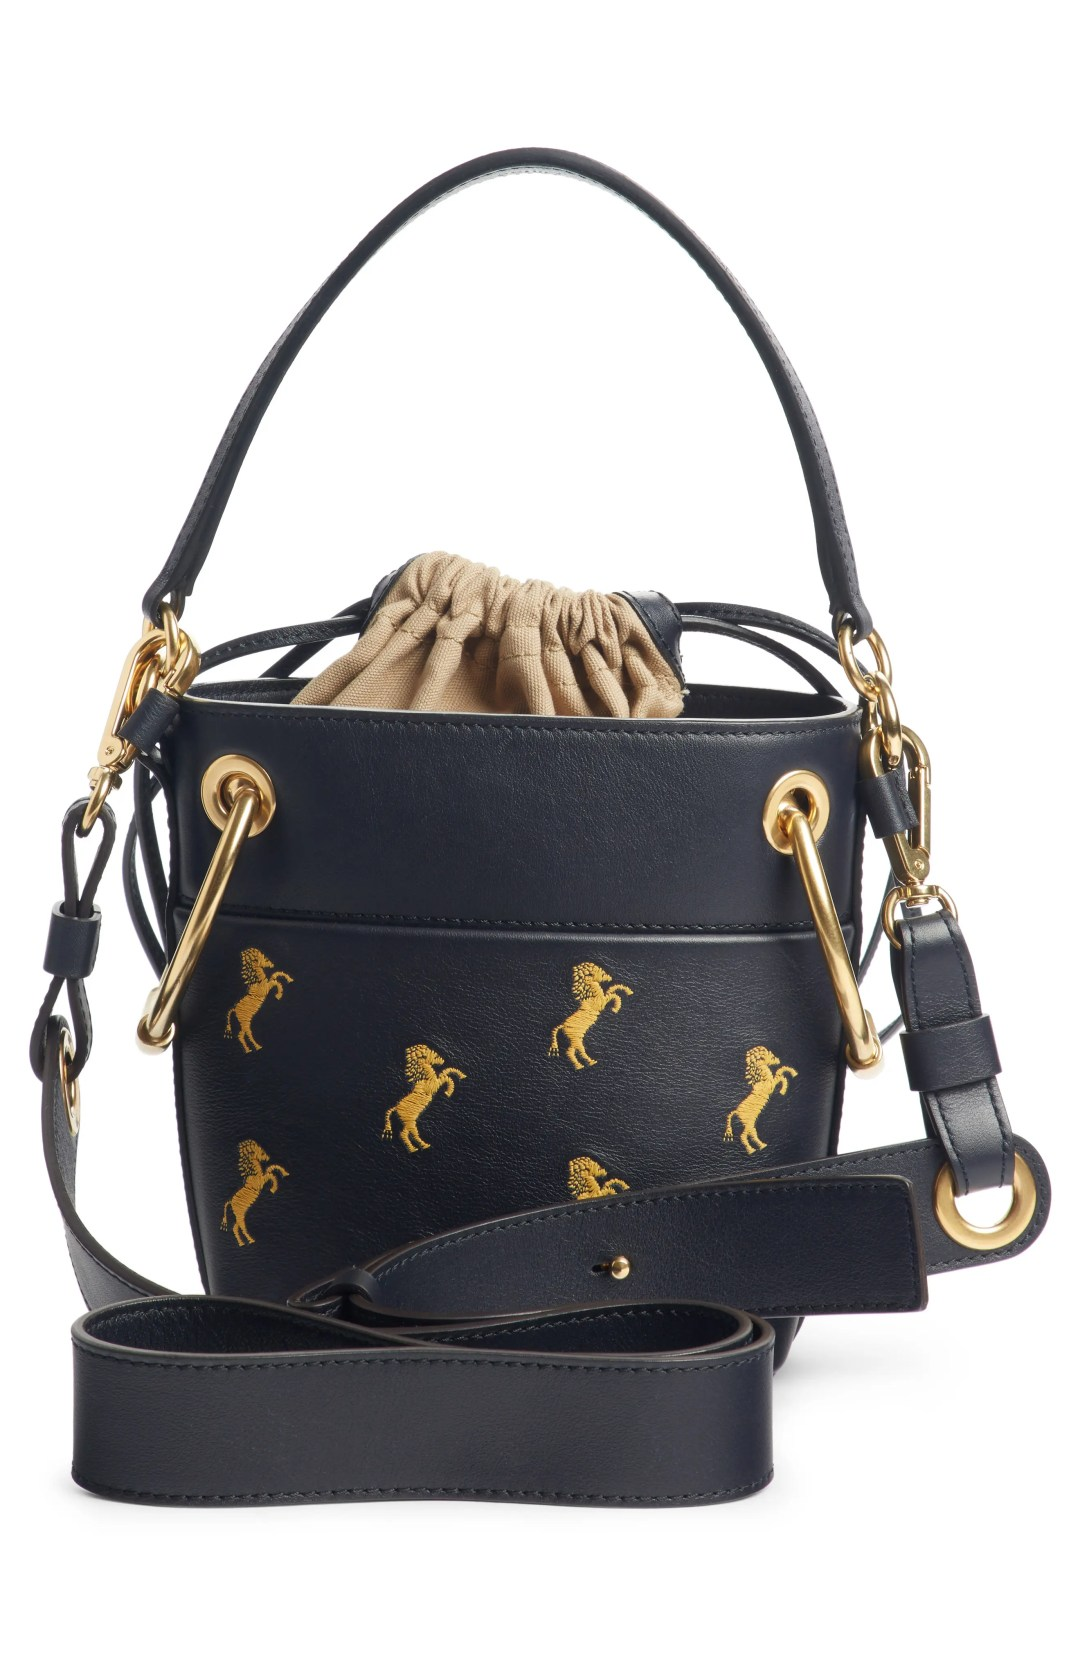 5f8c389b80e Chloé Roy Mini Embroidered Leather Bucket Bag